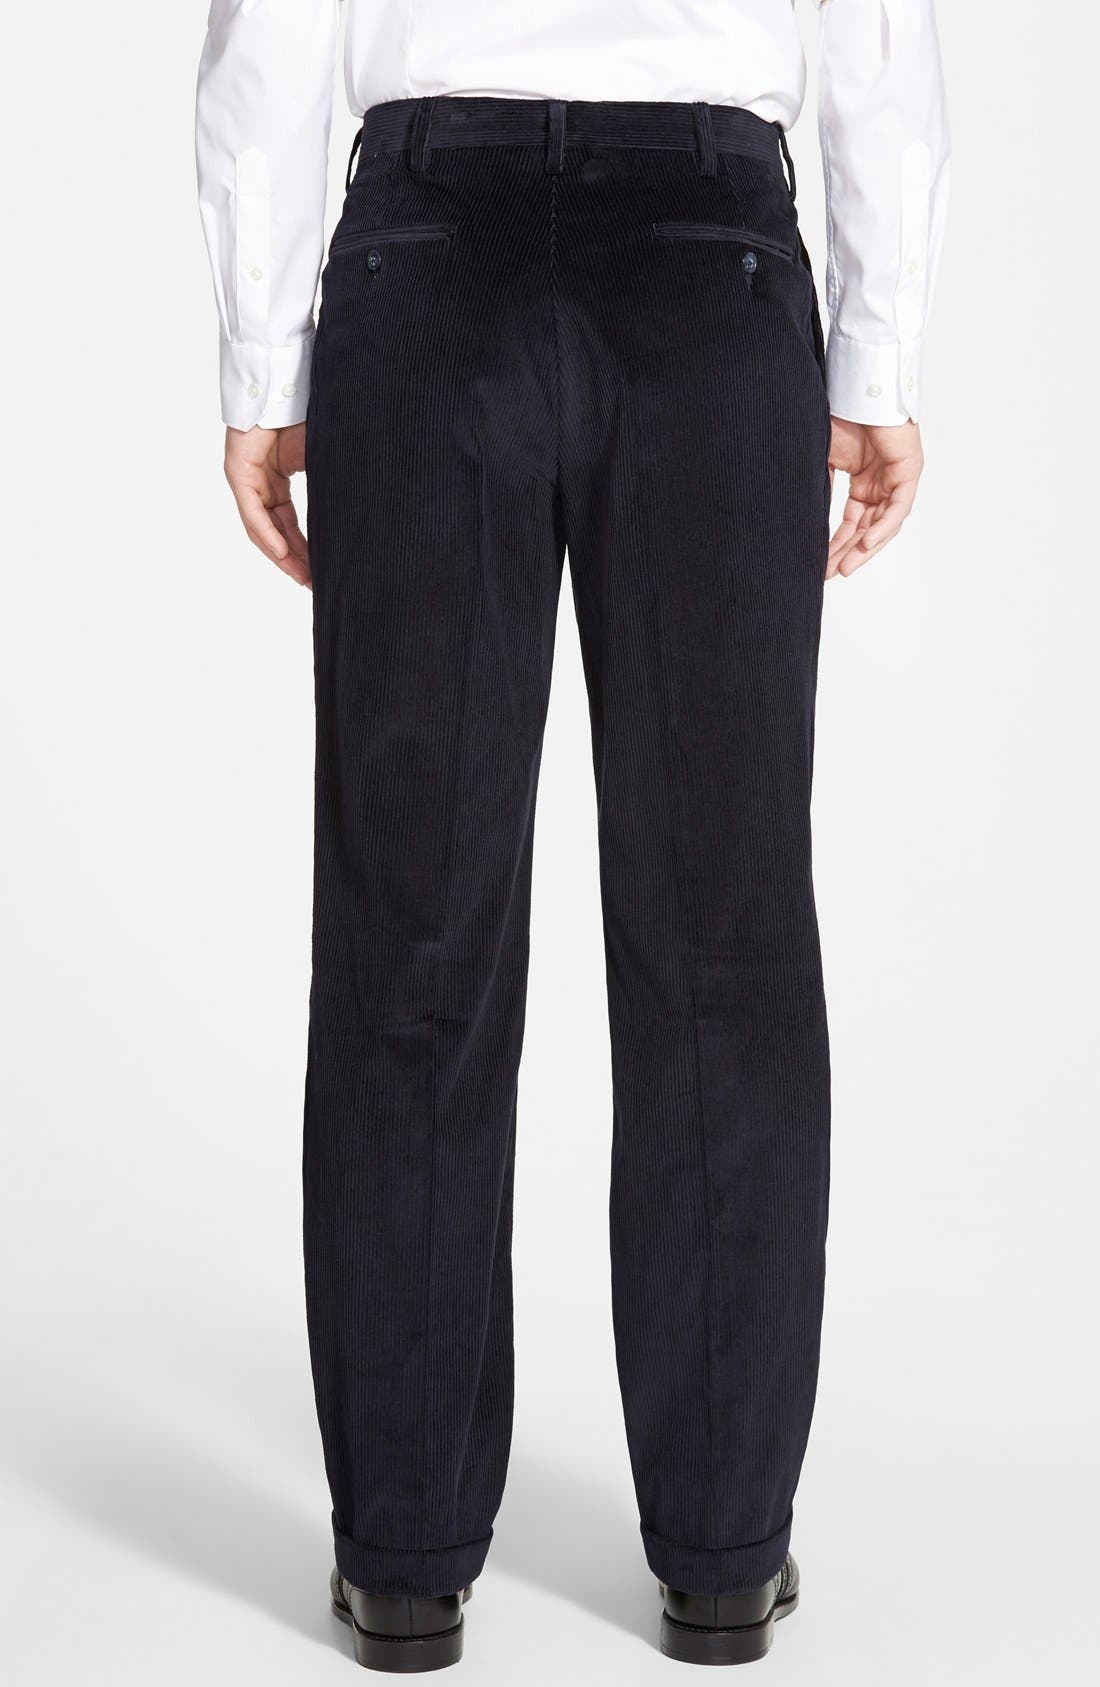 Pants for Men On Sale, Midnight, Cotton, 2017, 30 38 Incotex